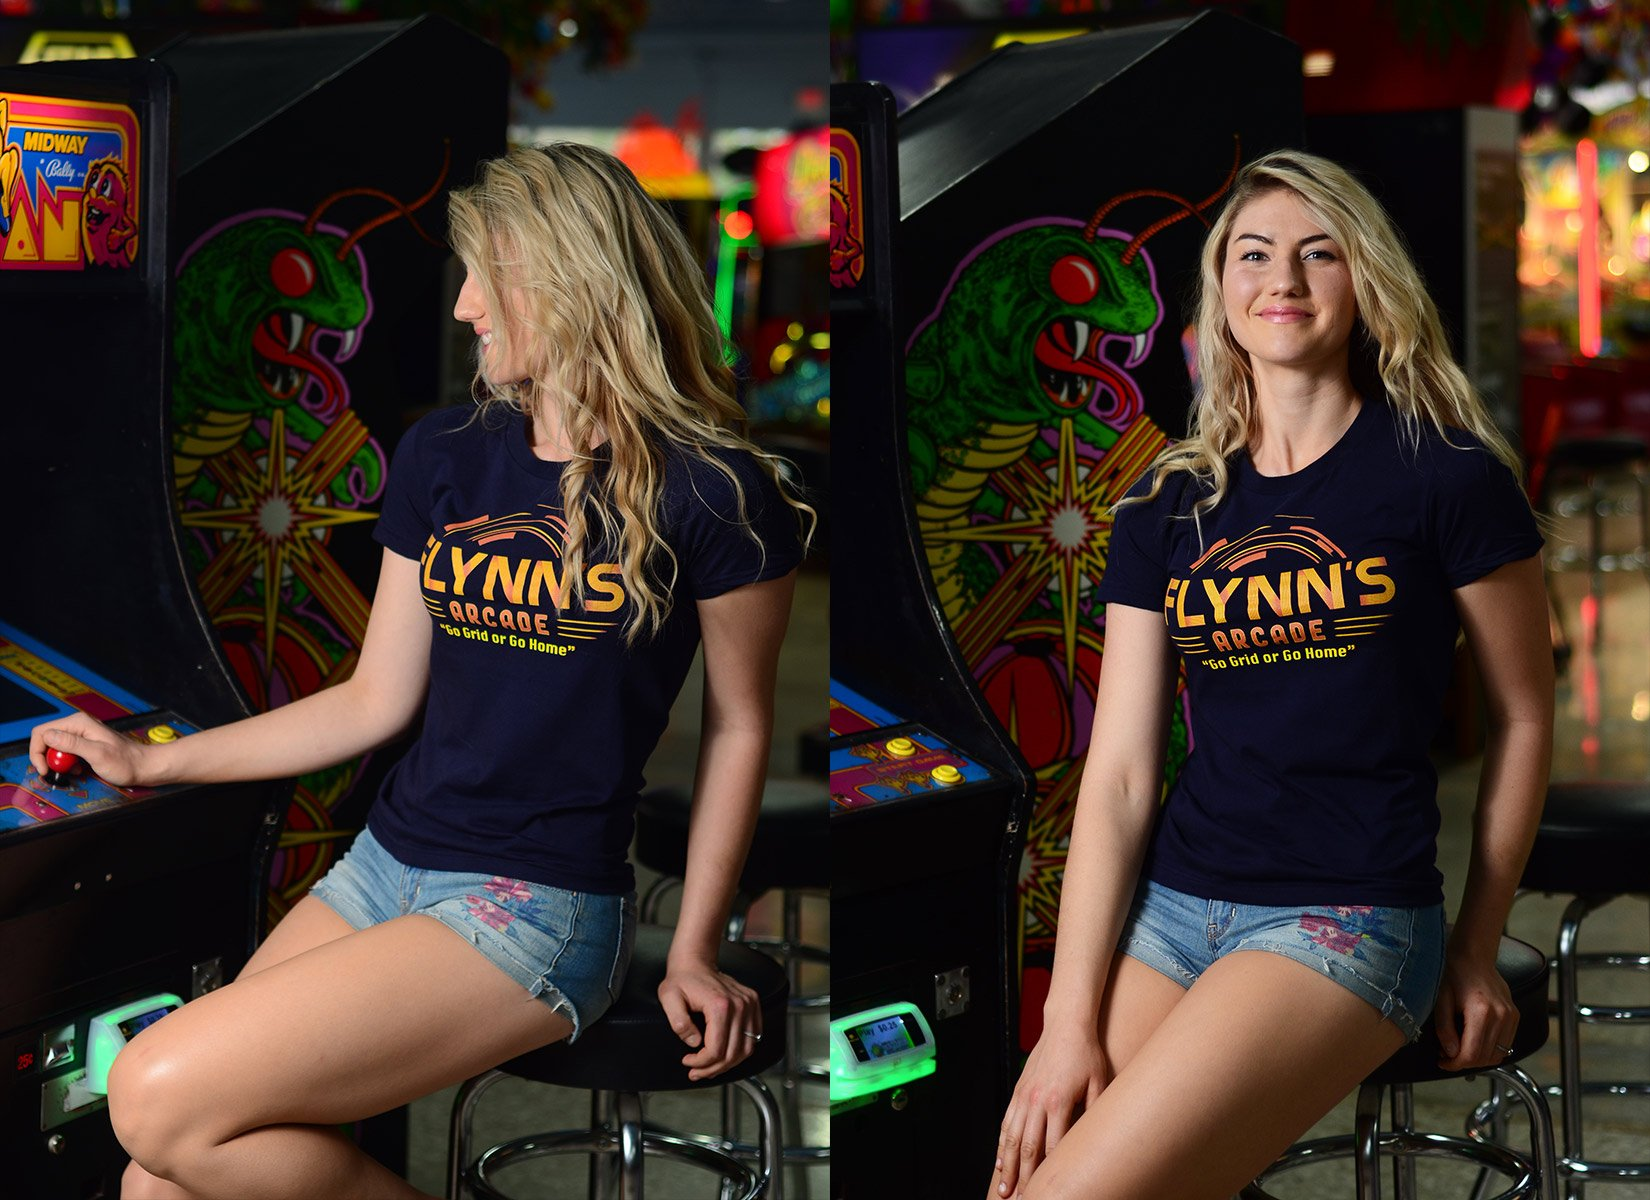 Flynn's Arcade on Juniors T-Shirt